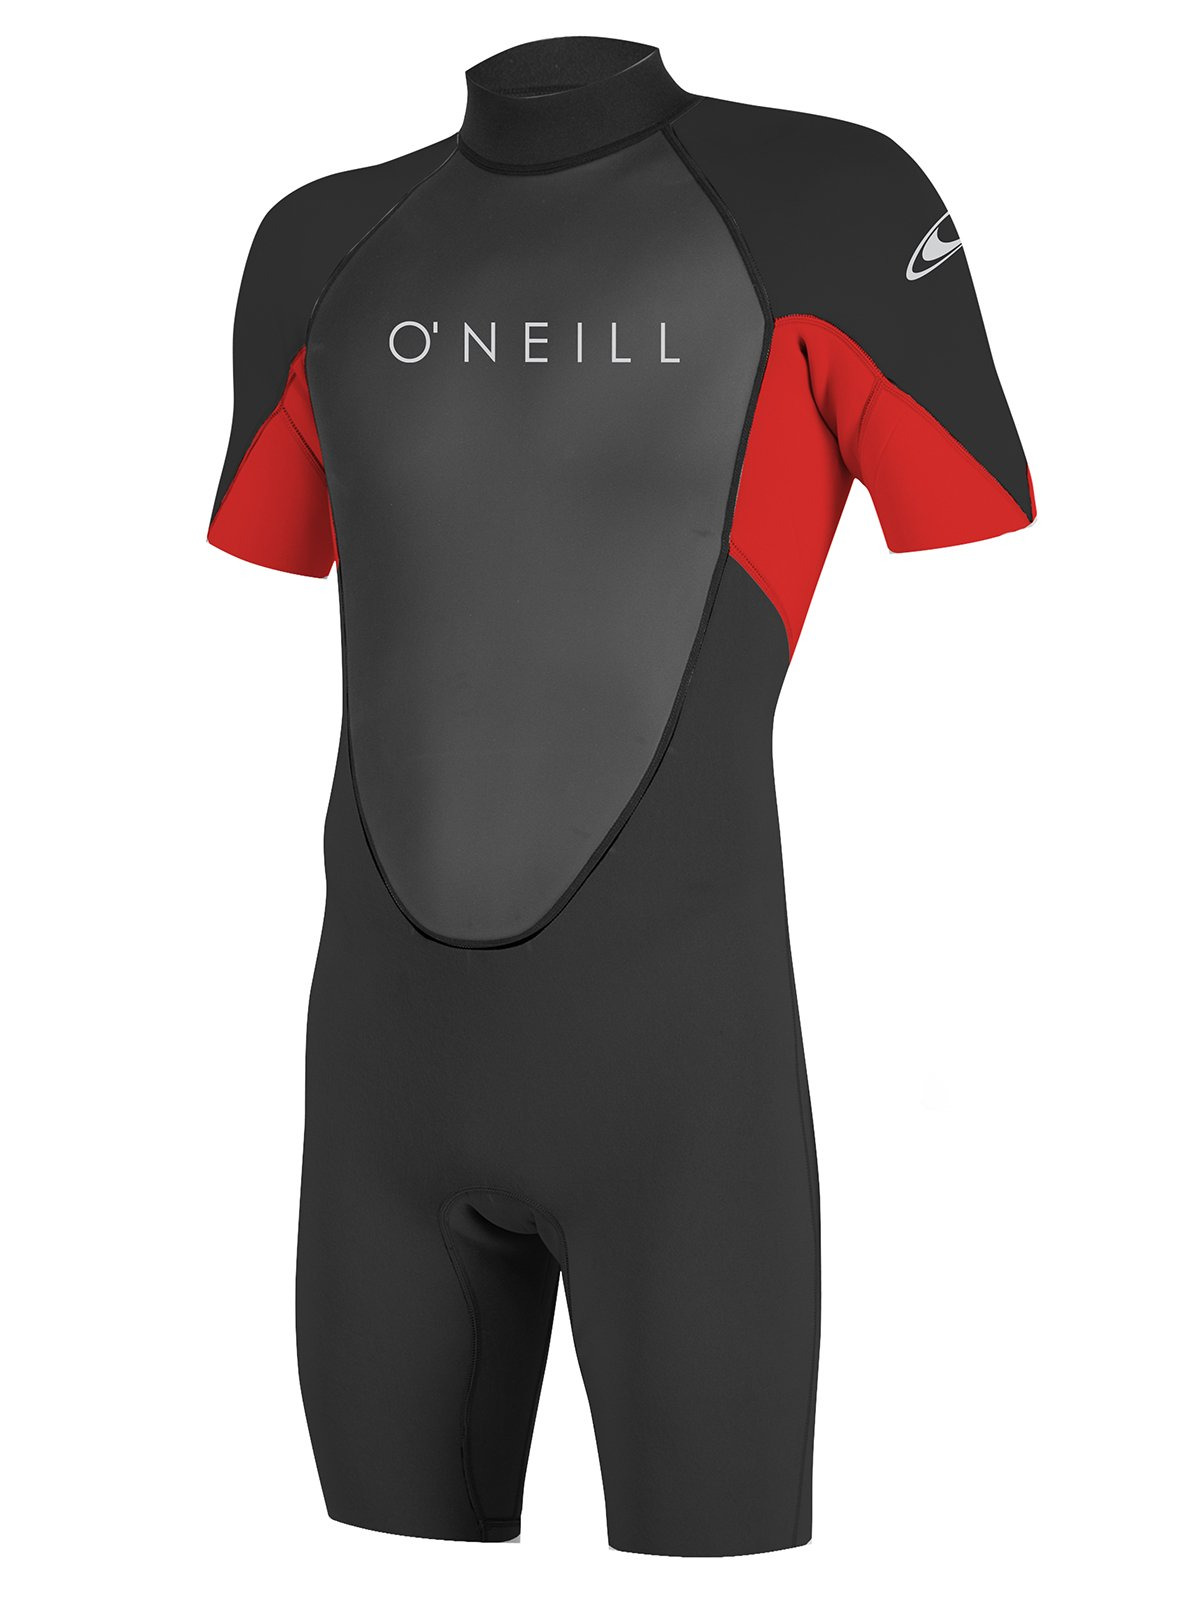 O'Neill Reactor-2 men's spring 3XL Tall Black/red (5124A) by O'Neill Wetsuits